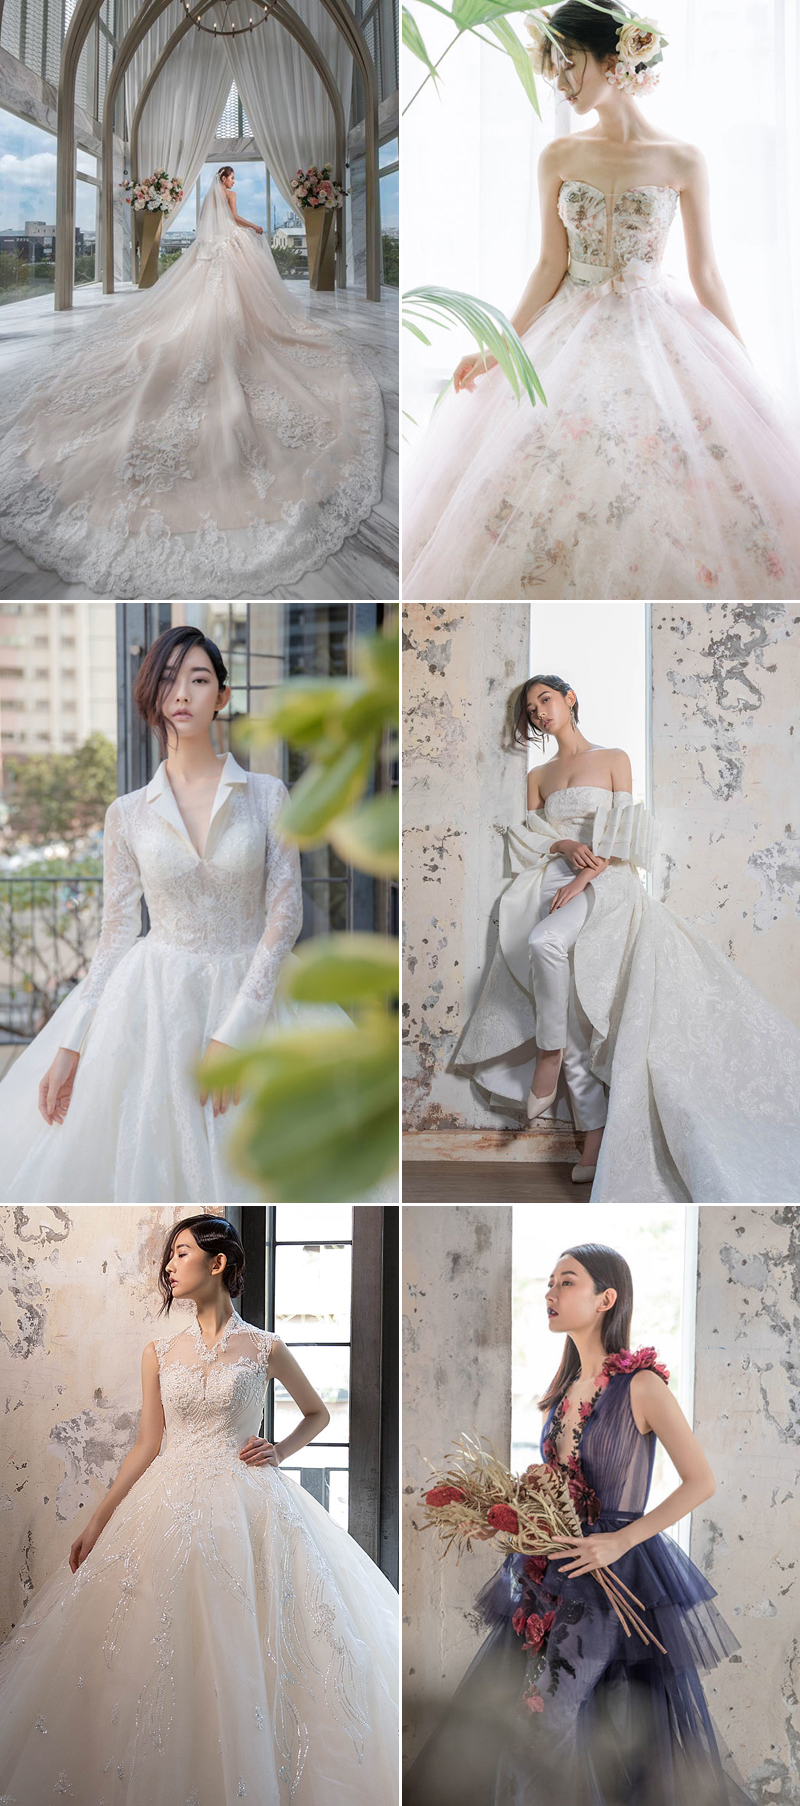 taiwan-wedding-dress05-8dpp